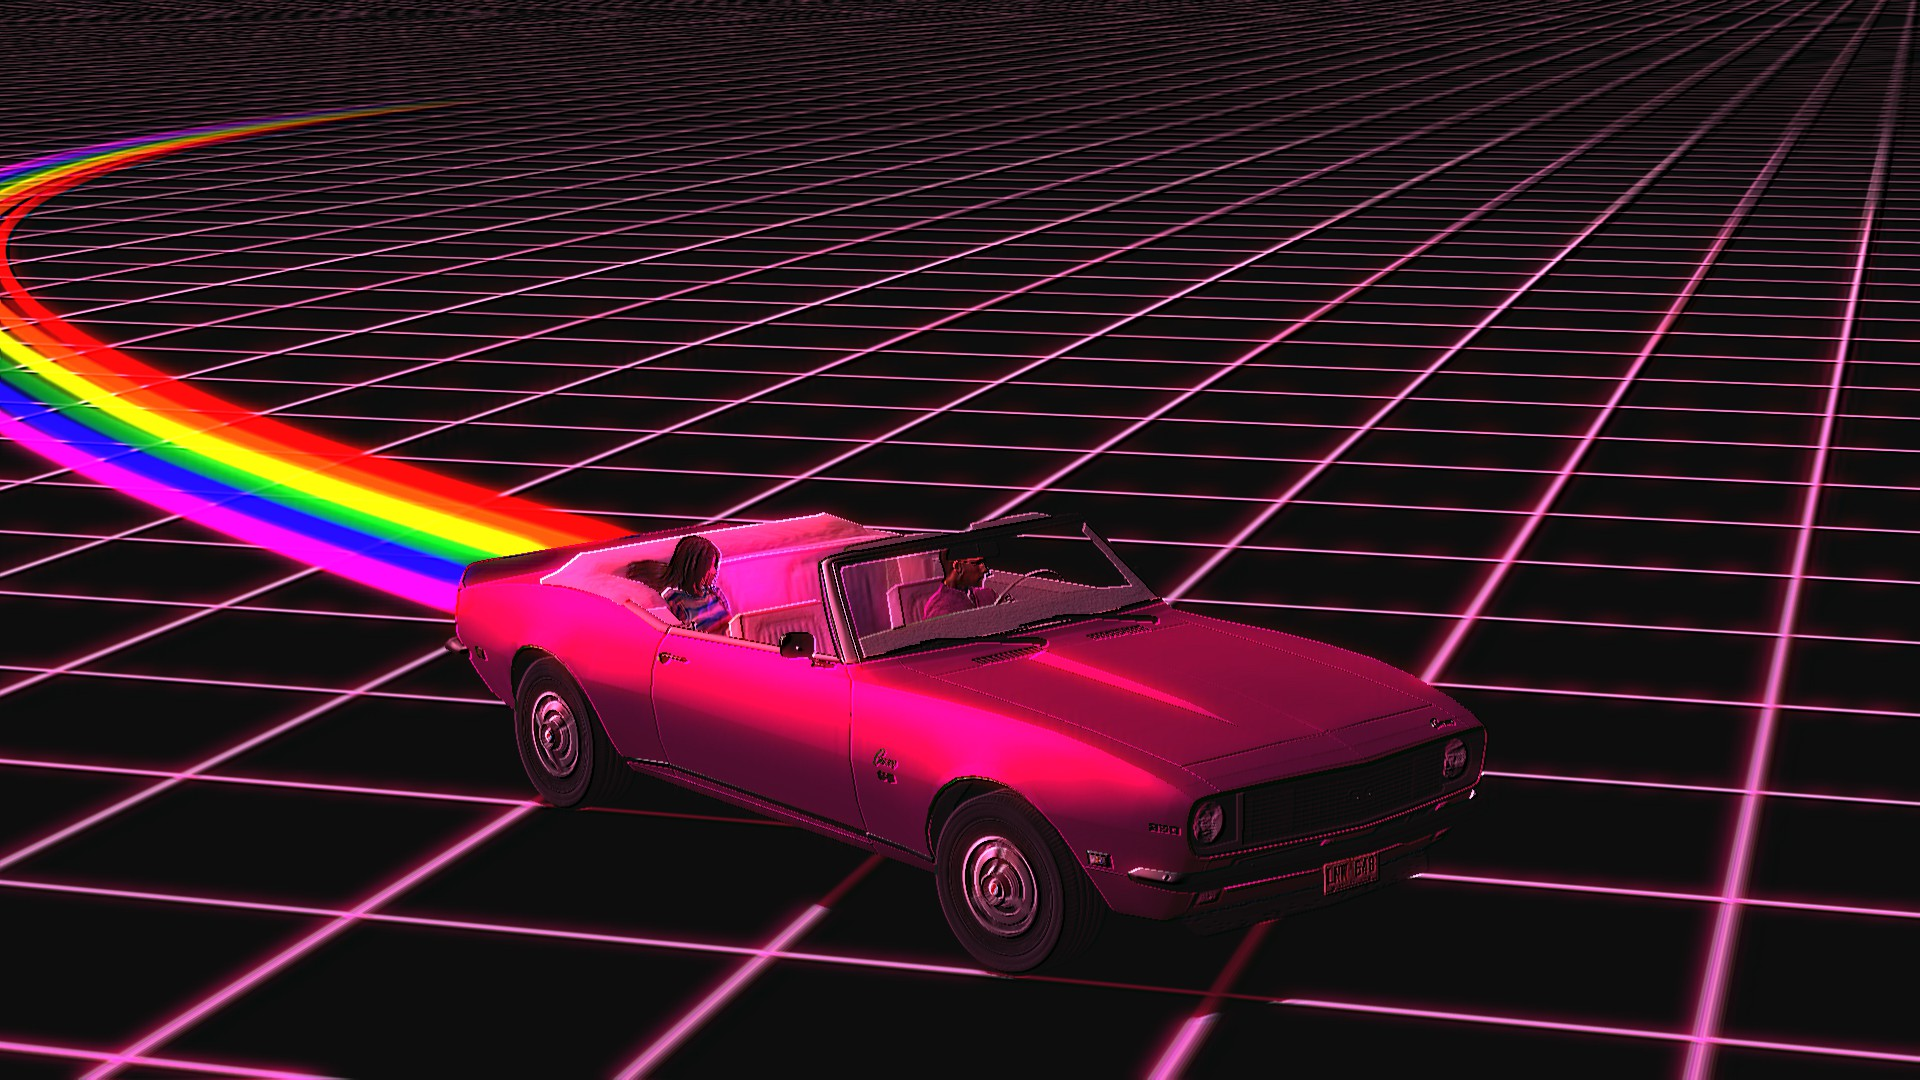 Retro Wave HD Wallpaper   Background Image   1920x1080   ID:829970 - Wallpaper Abyss